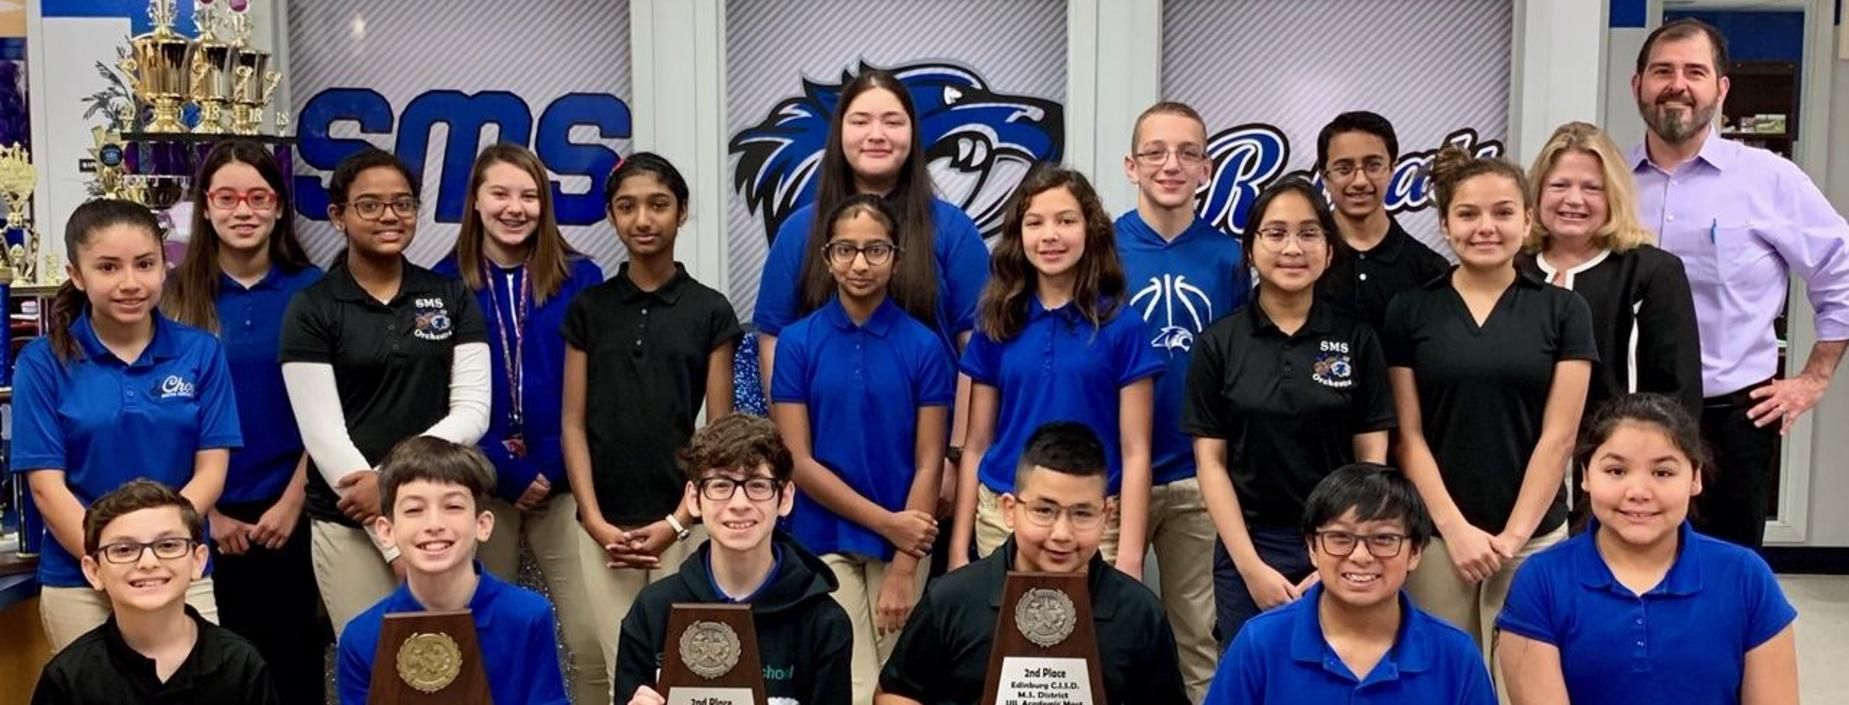 SMS UIL 2019